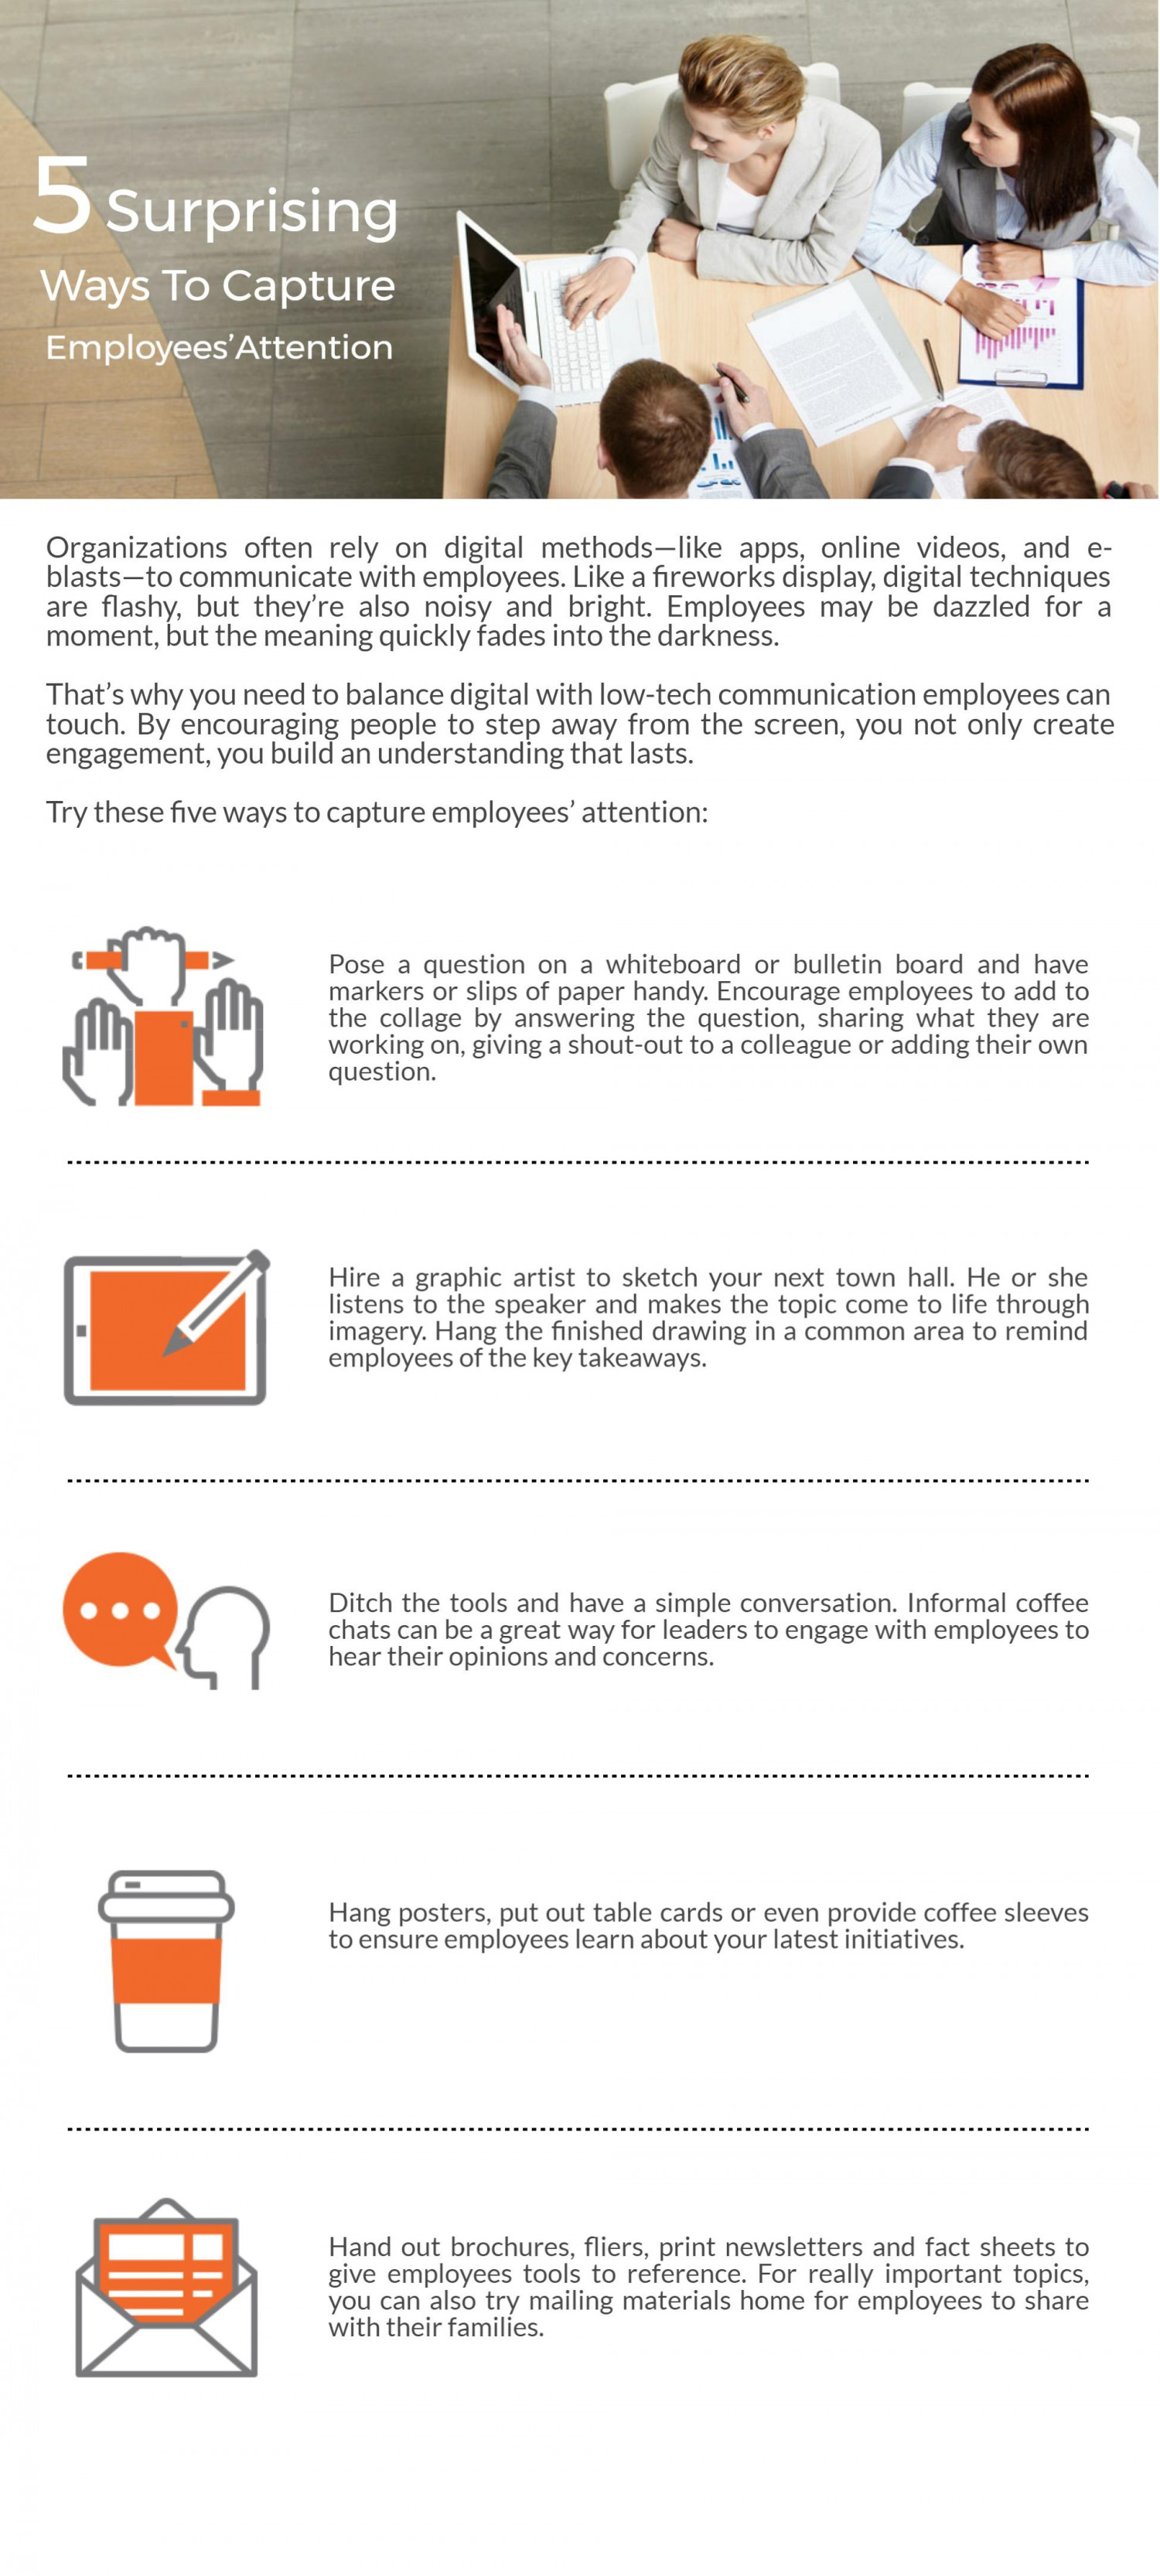 Capture Employees' Attention With 5 Surprising Points Infographic